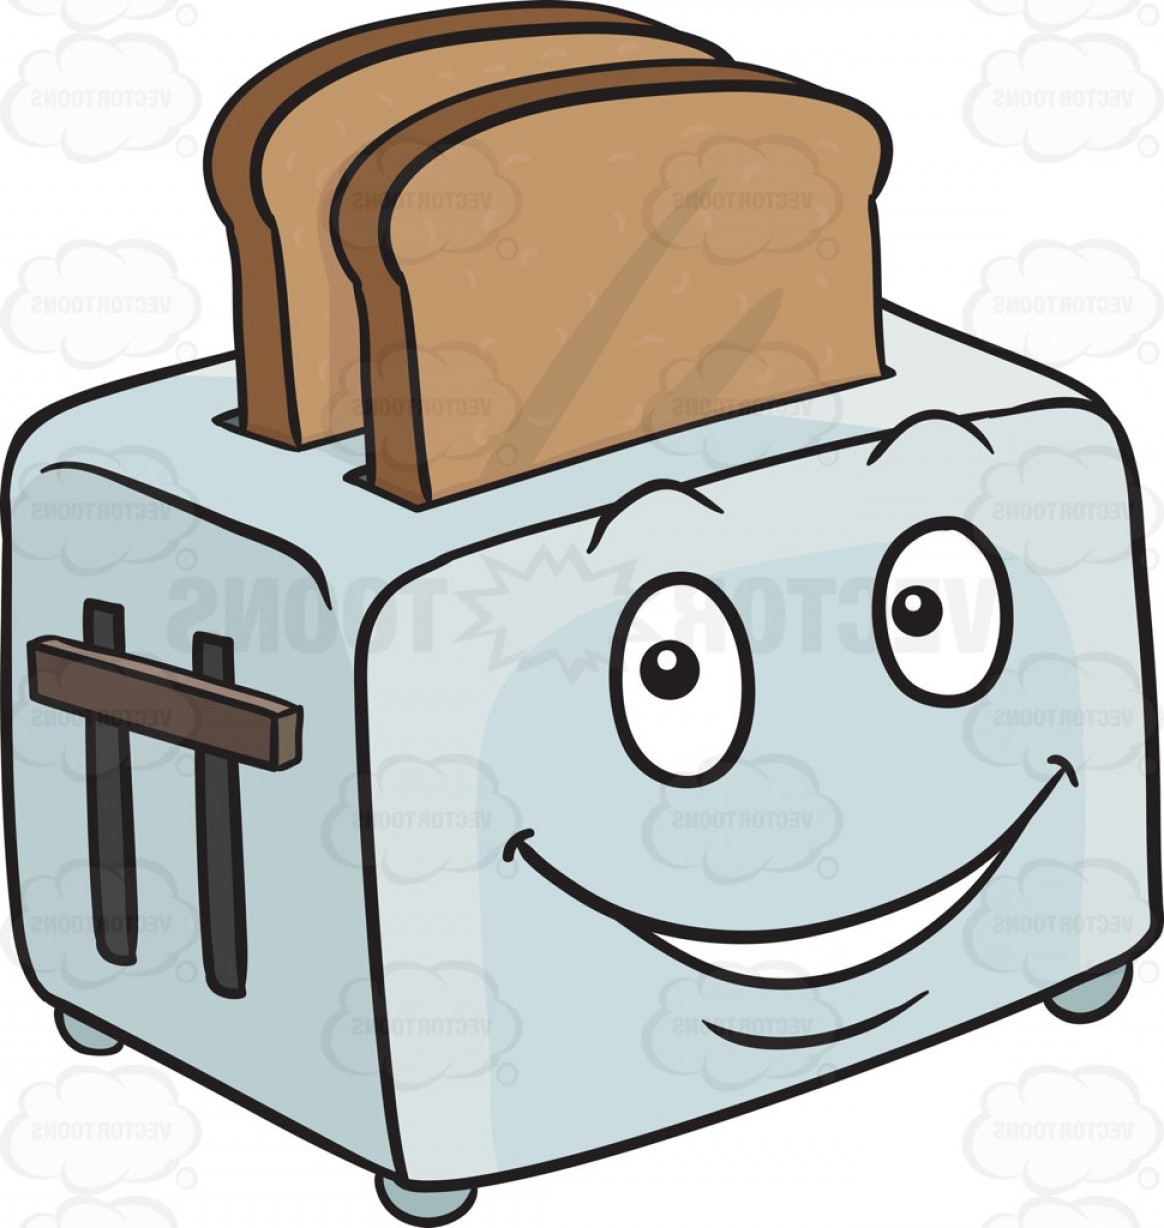 banner free download Toaster clipart happy. Popping out breads emoji.